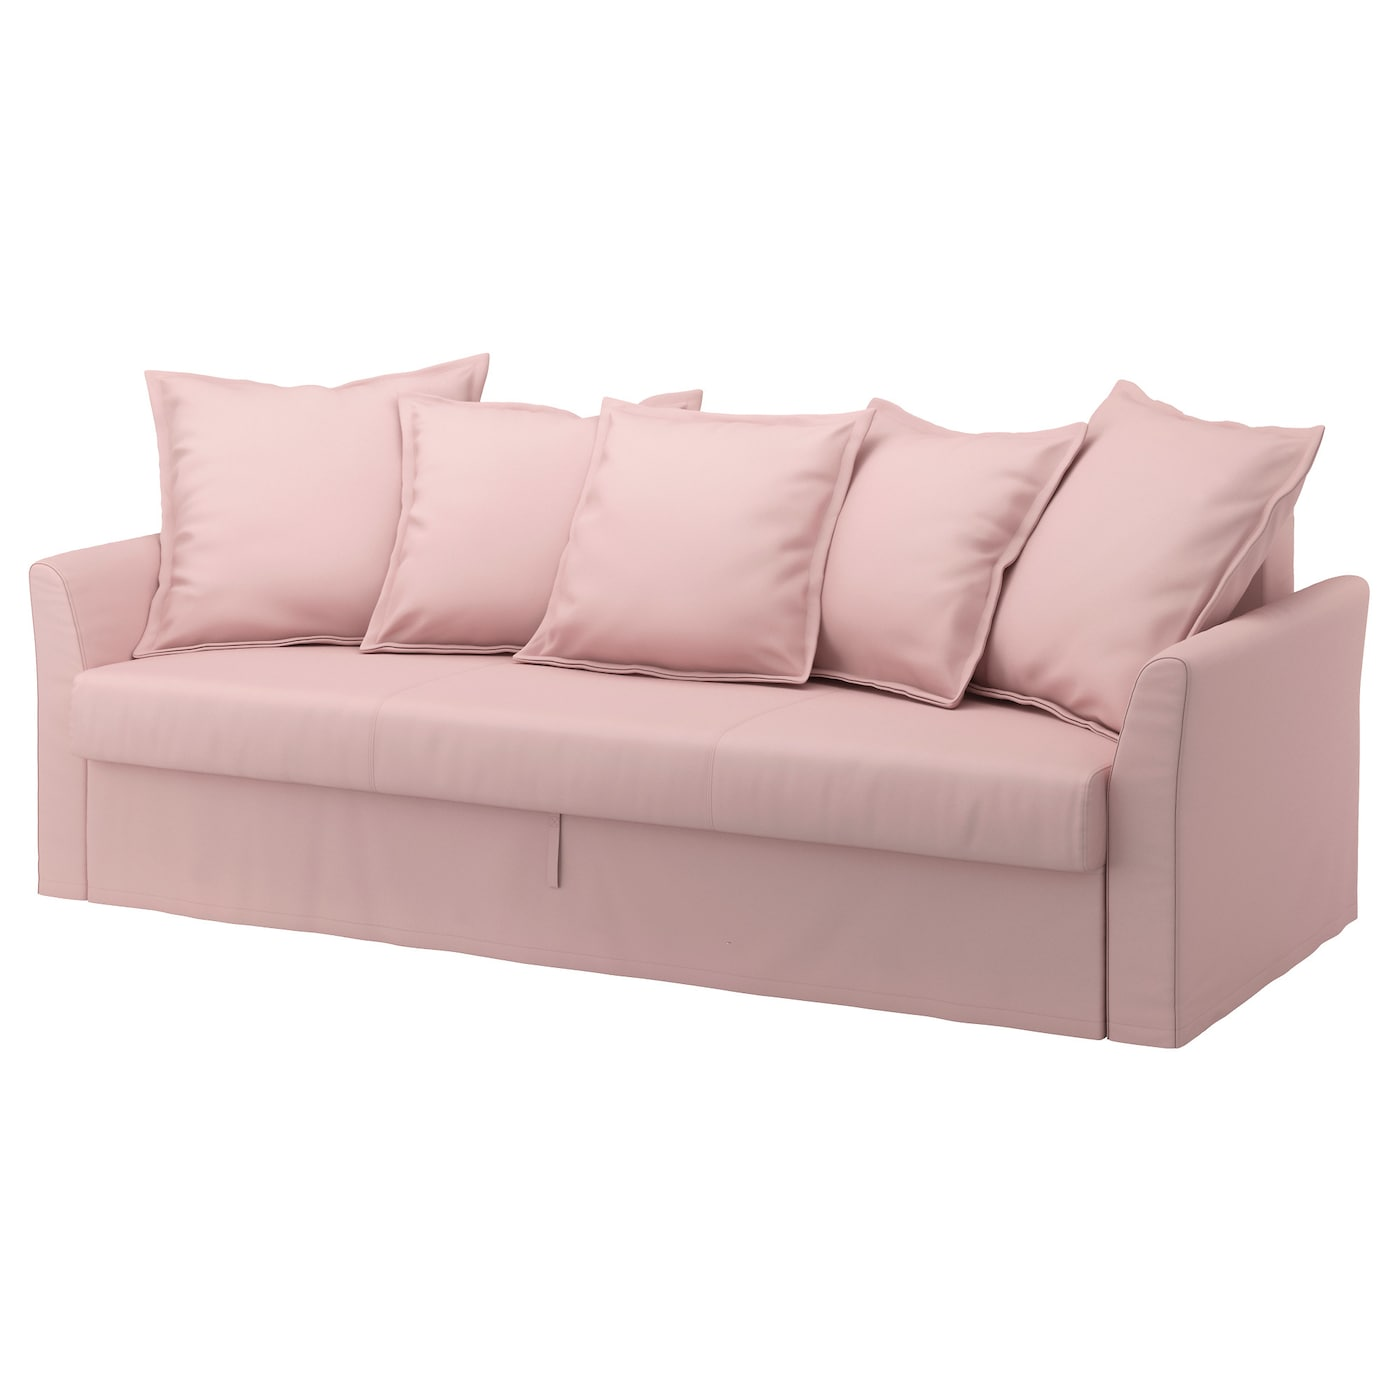 holmsund three seat sofa bed ransta light pink ikea. Black Bedroom Furniture Sets. Home Design Ideas